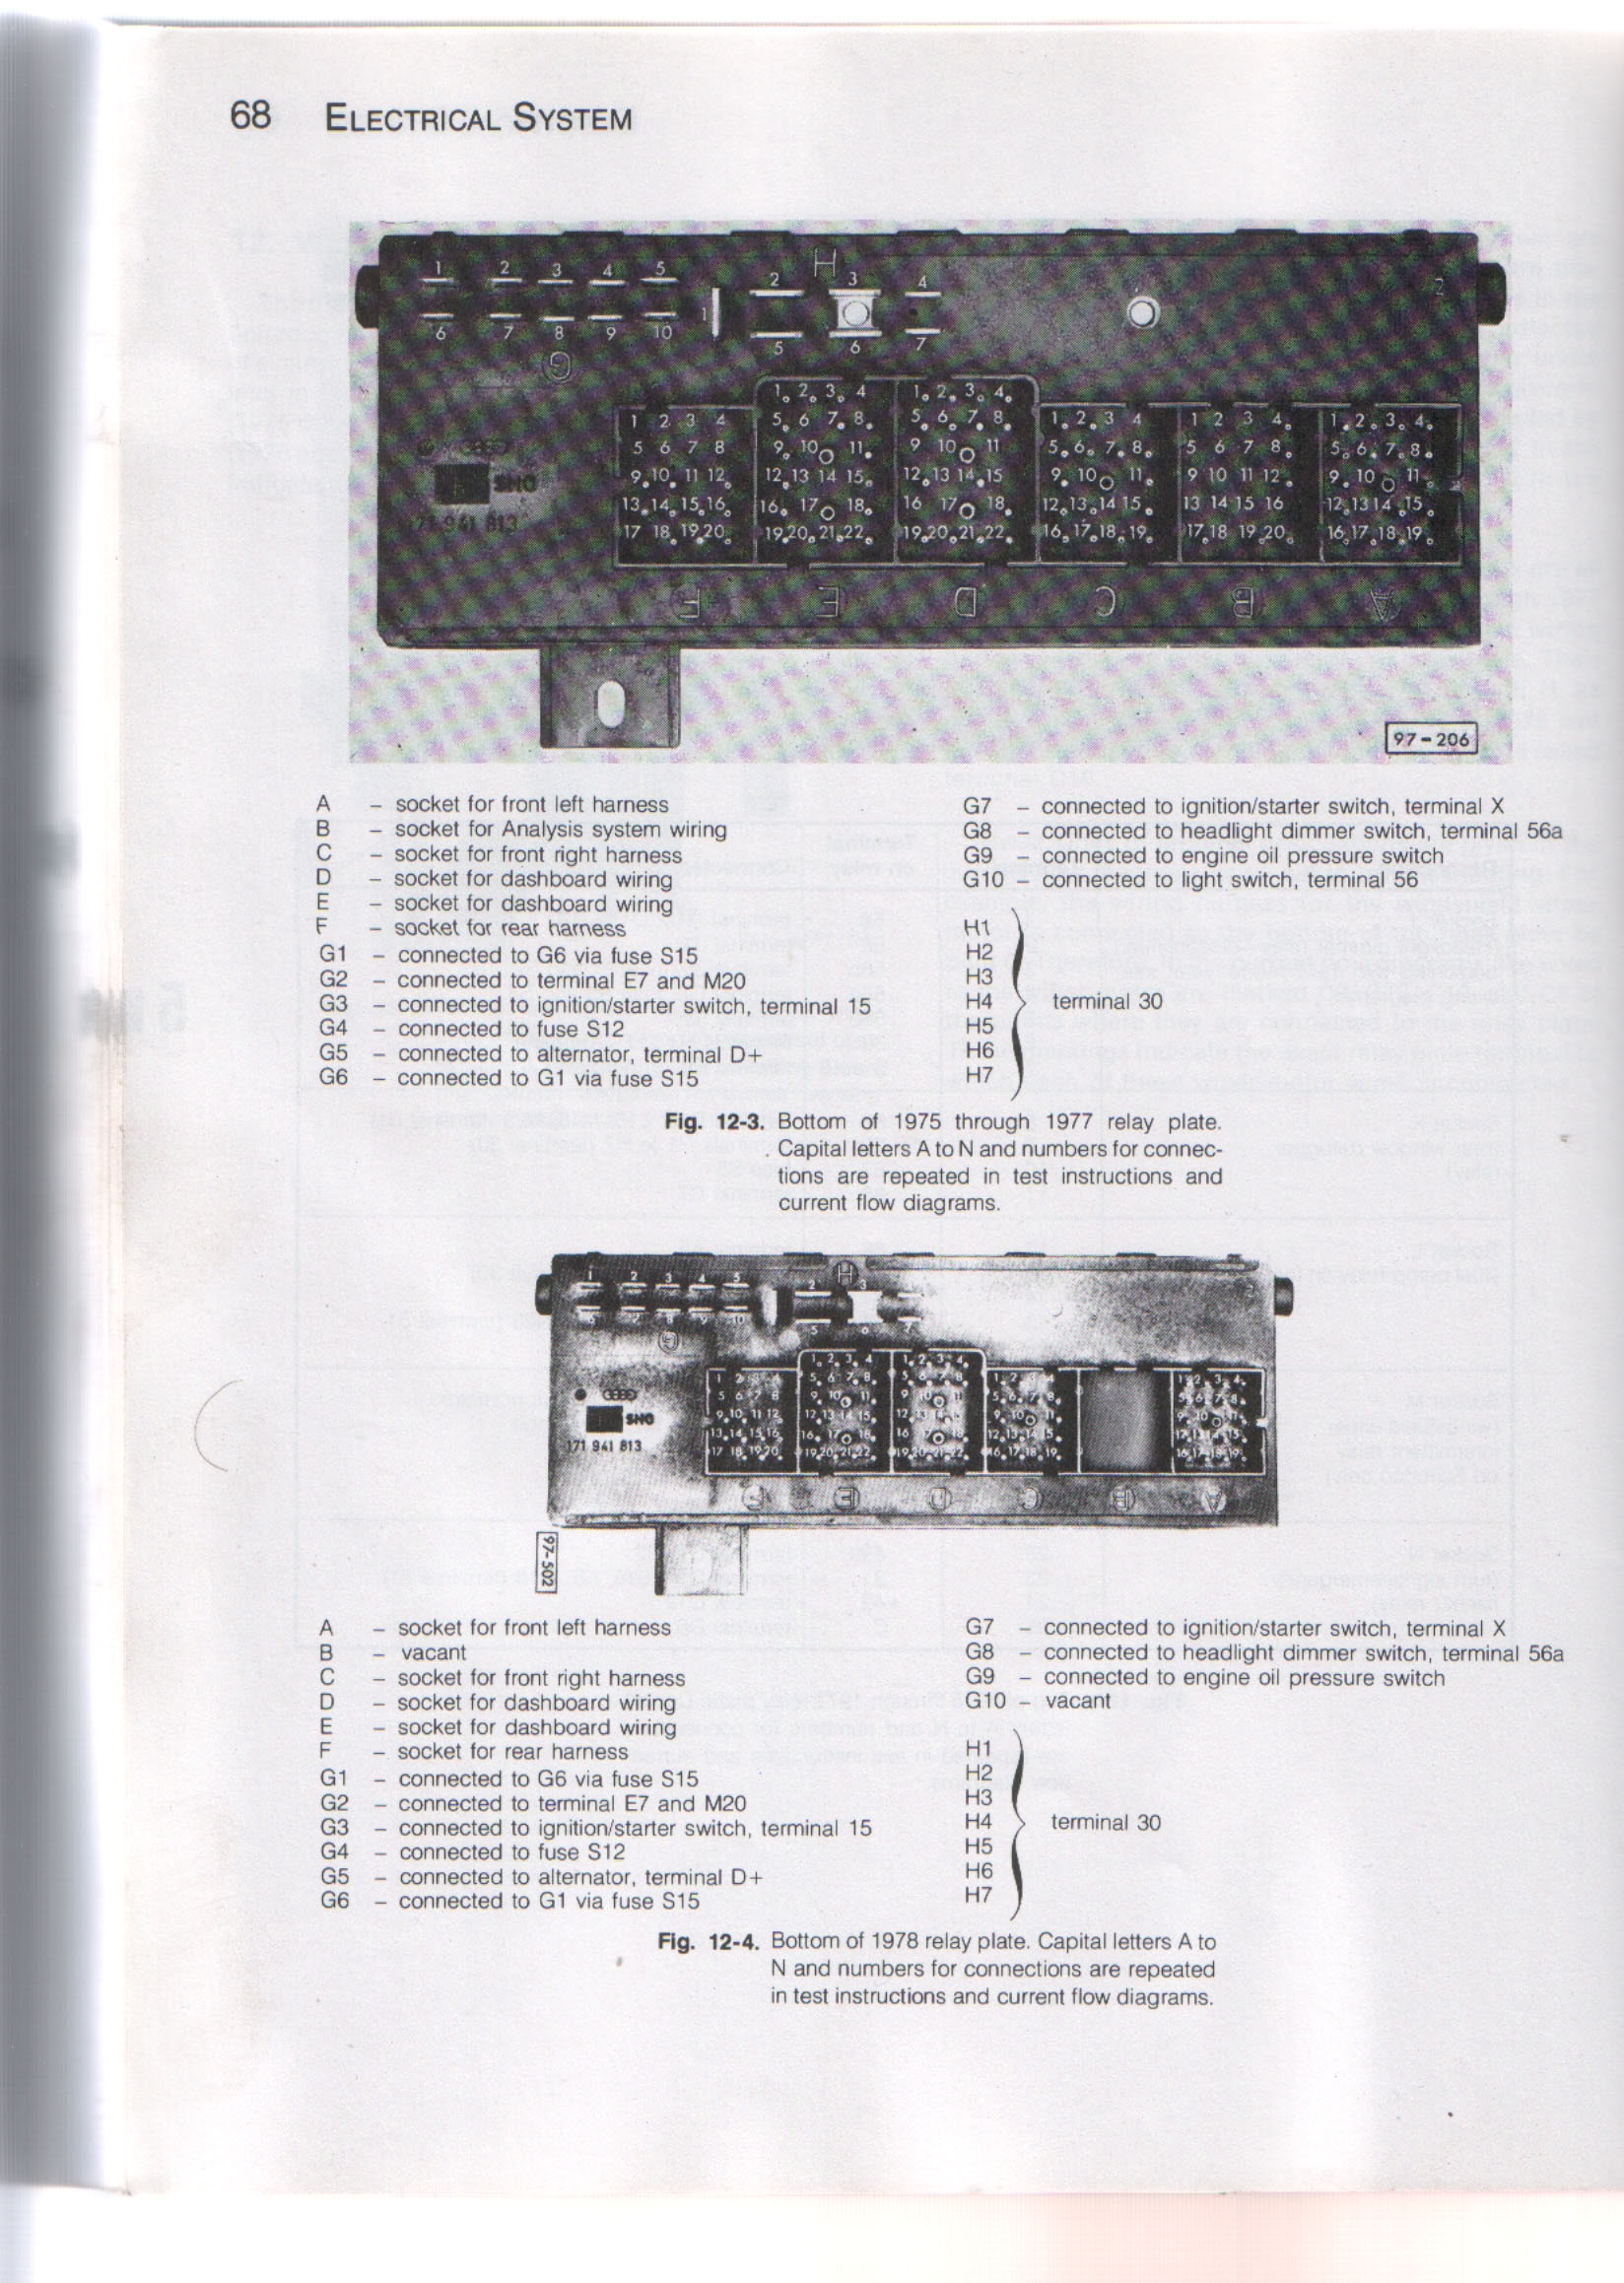 2009 vw rabbit fuse box diagram gAYbQTL 2007 vw rabbit fuse box diagram image details 1982 vw rabbit fuse box at couponss.co